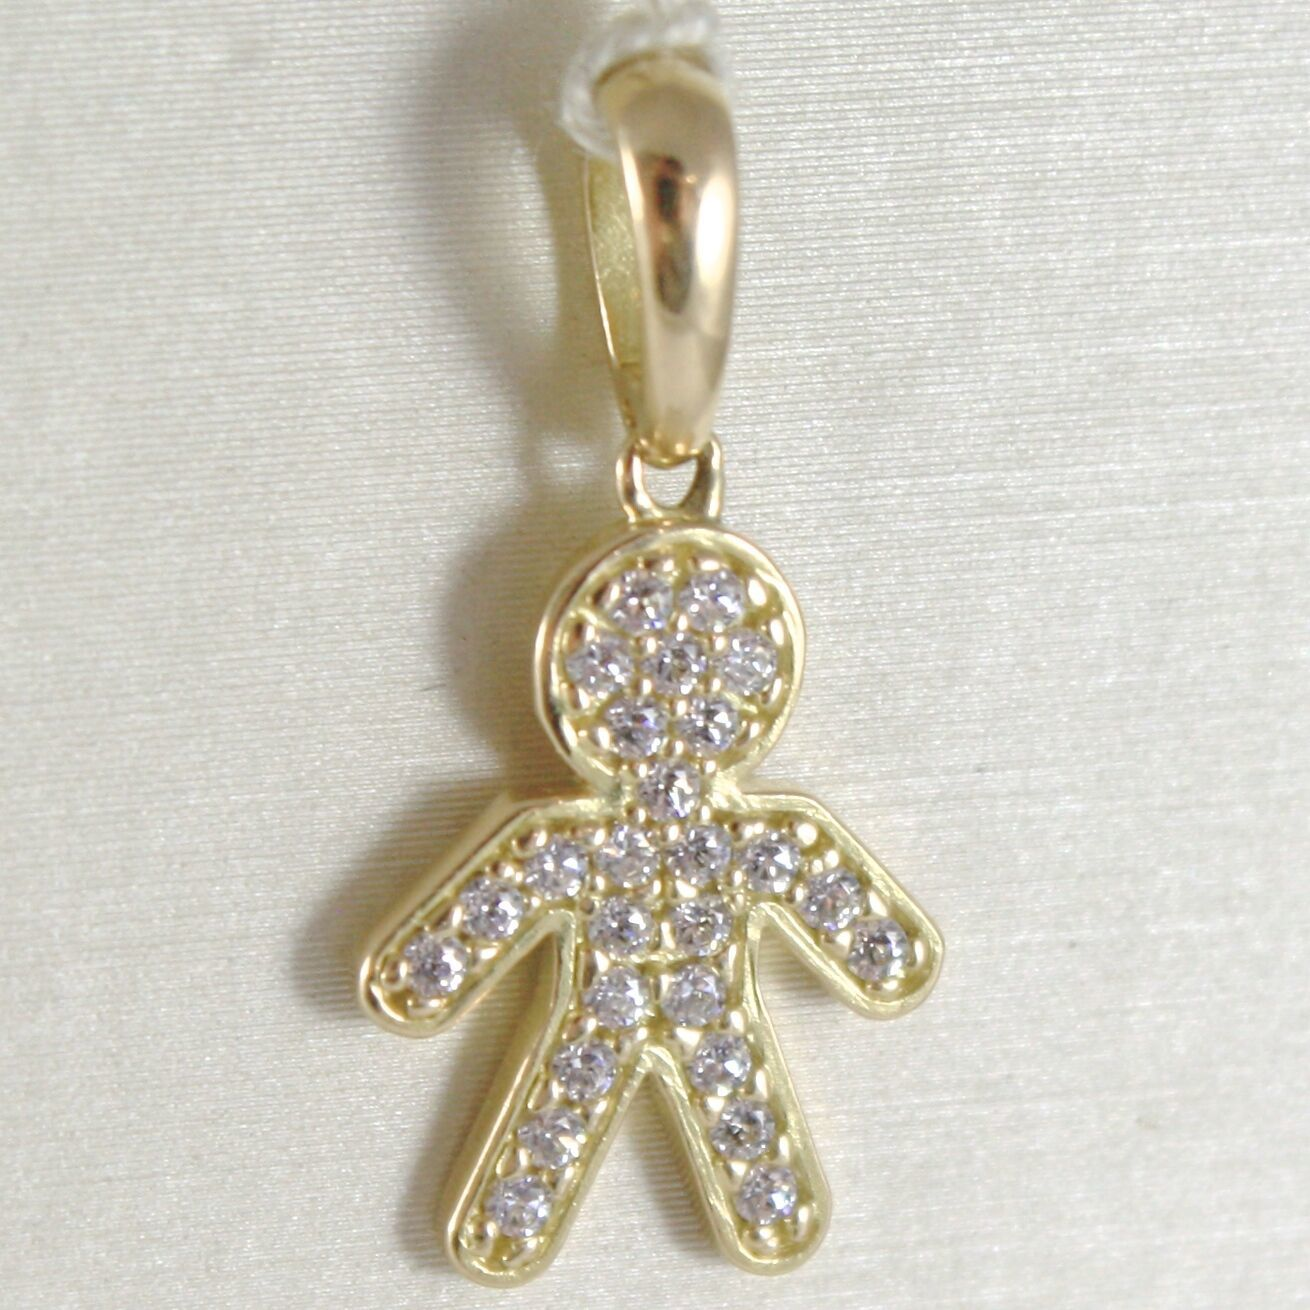 Yellow Gold Pendant 750 18k, Child, Kid along 2.3 cm Zirconia Made in Italy